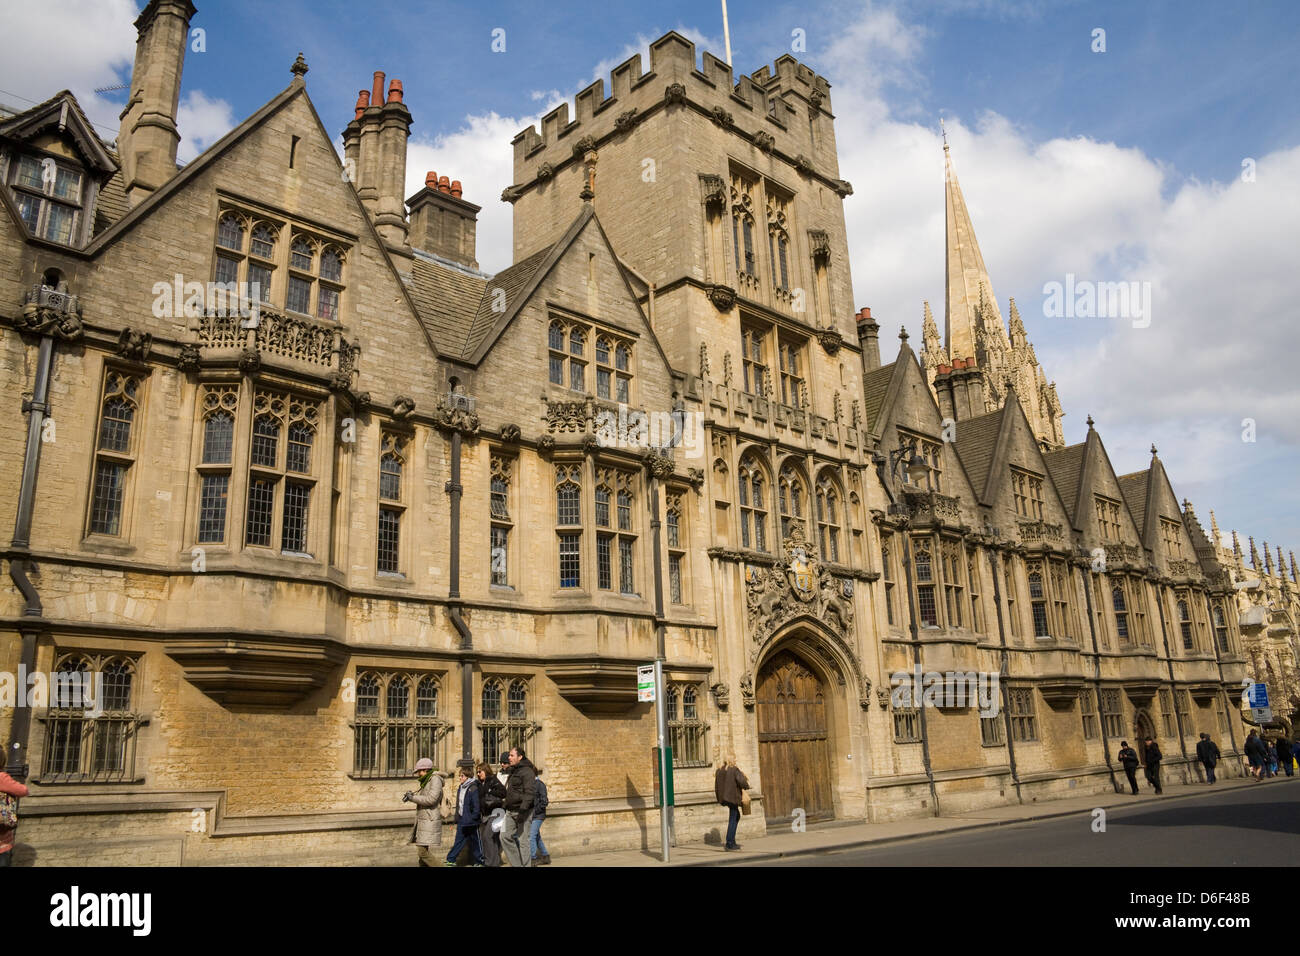 Oxford University Oxfordshire Front facade of Brasenose College in High Street founded in 1509 - Stock Image